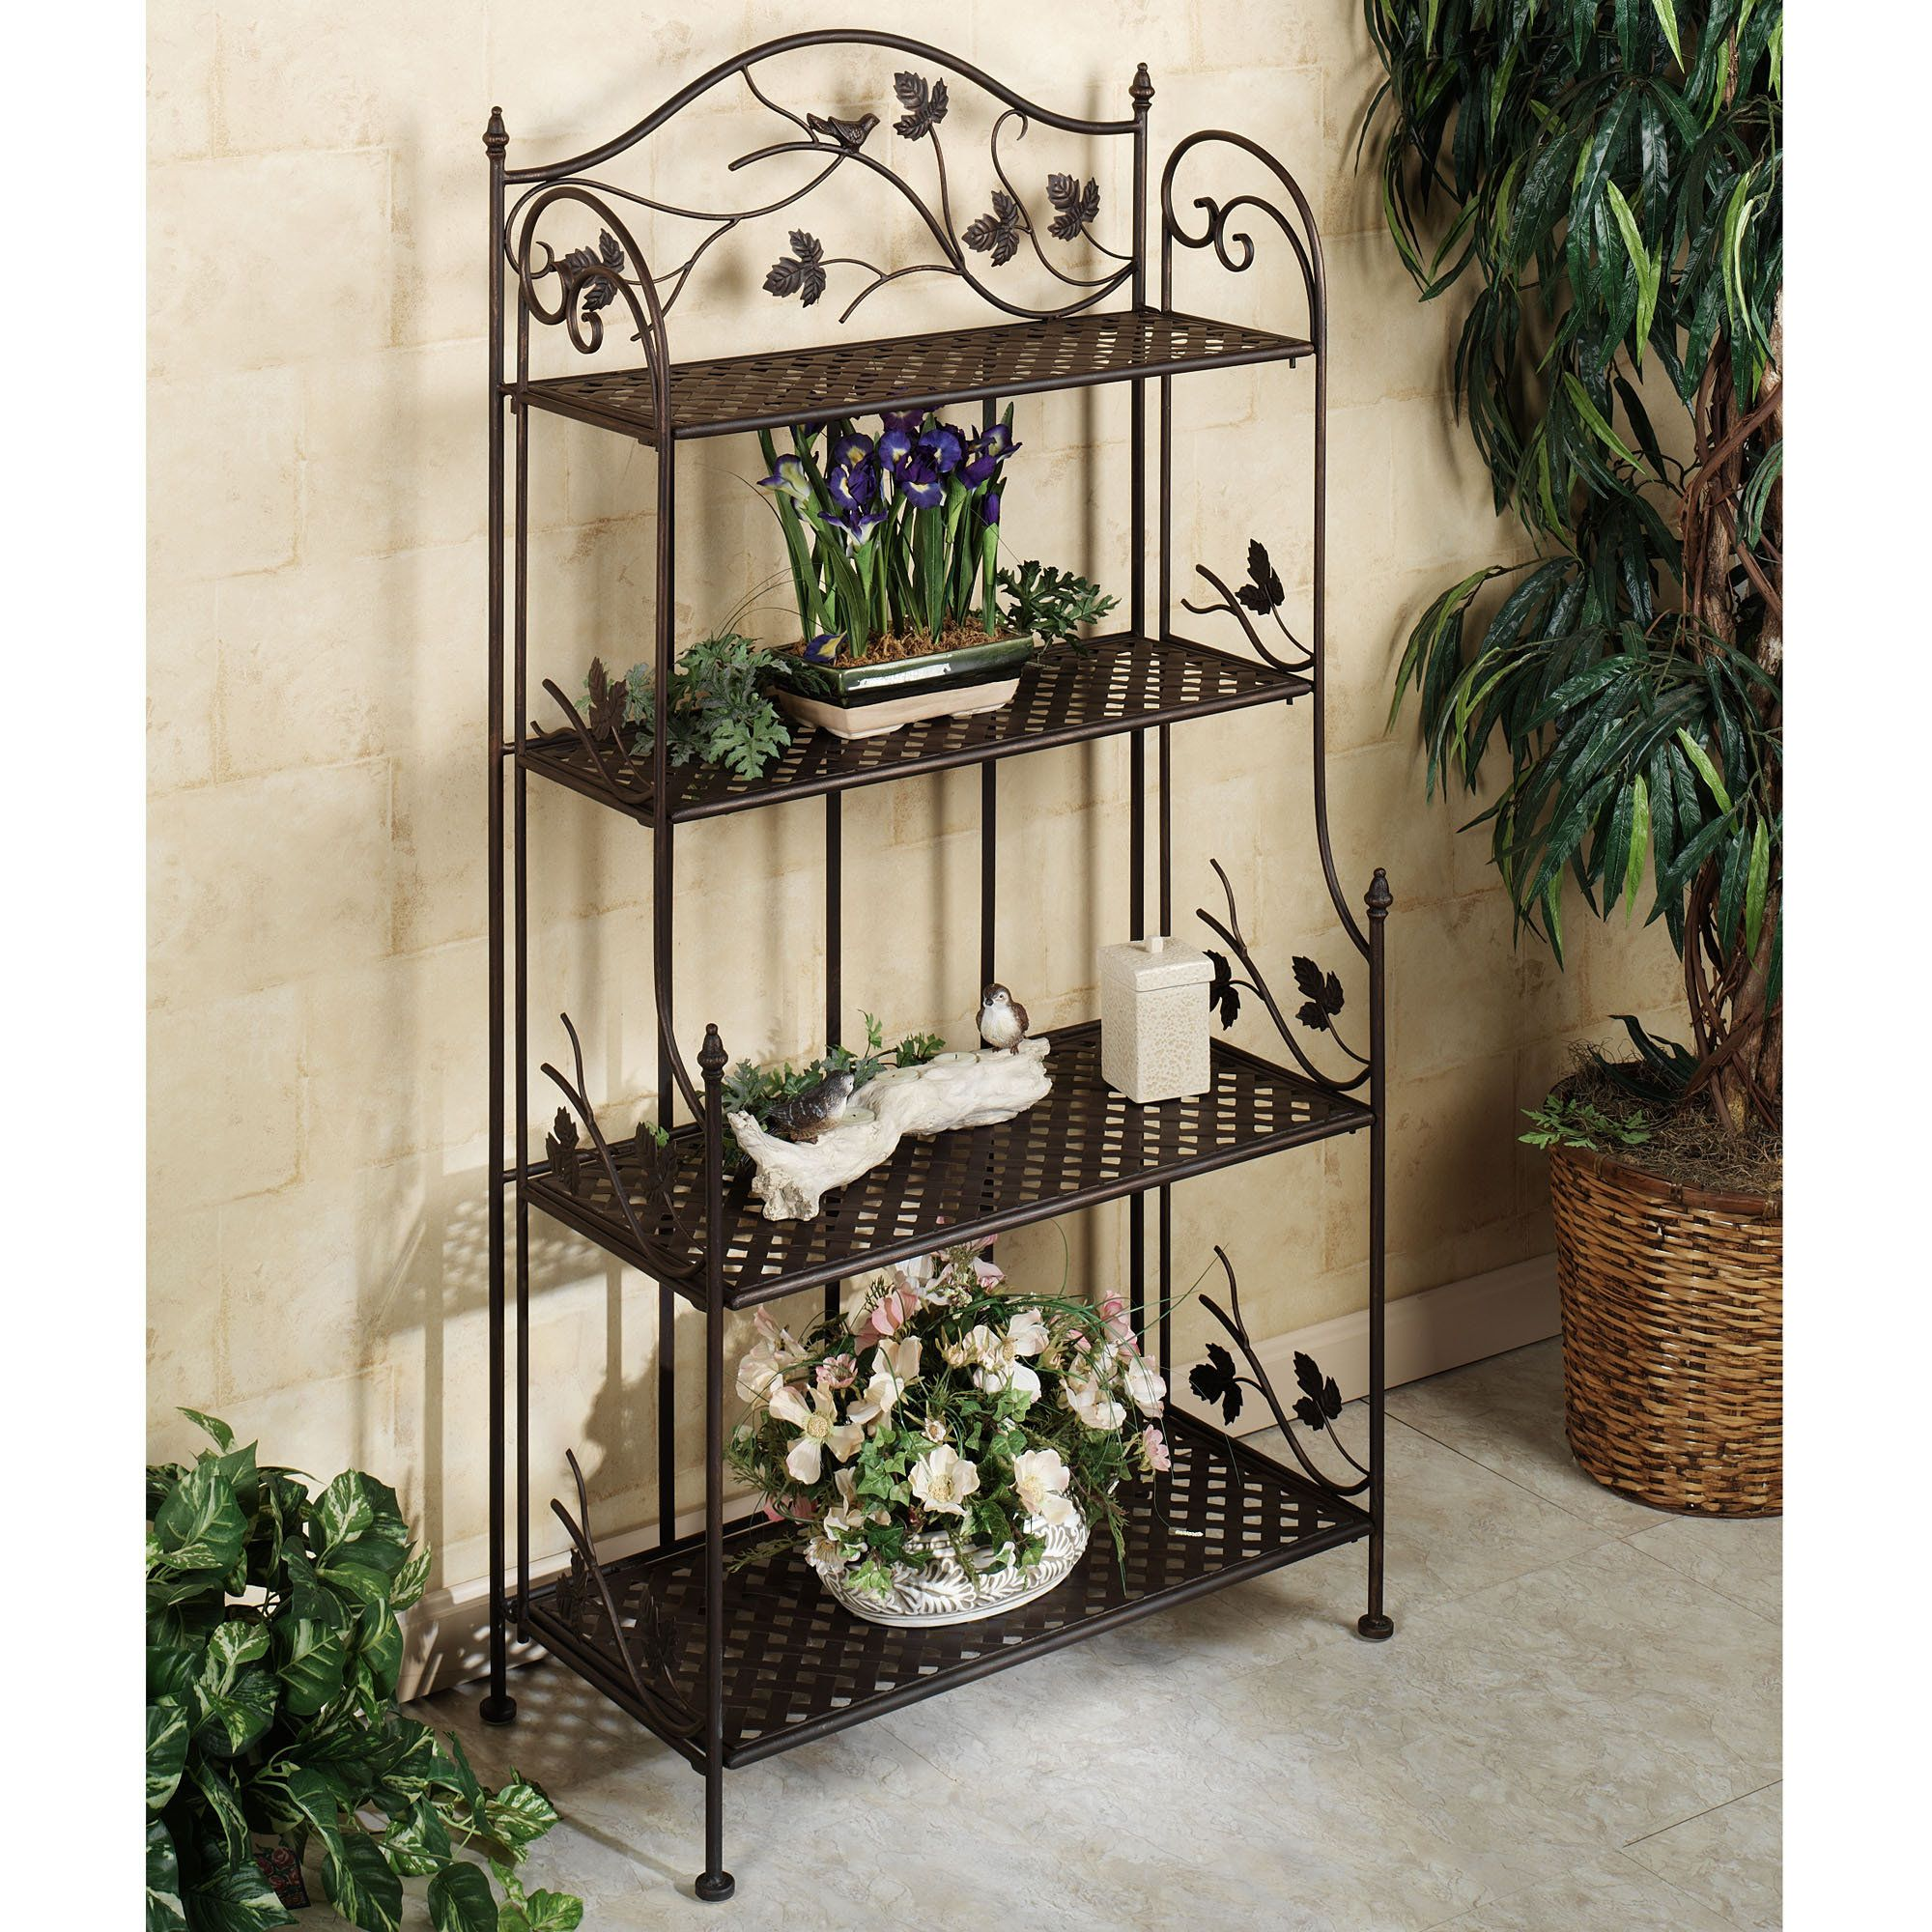 Green Metal Plant Stand Songbird Symphony Indoor Outdoor Etagere Indoor Outdoor